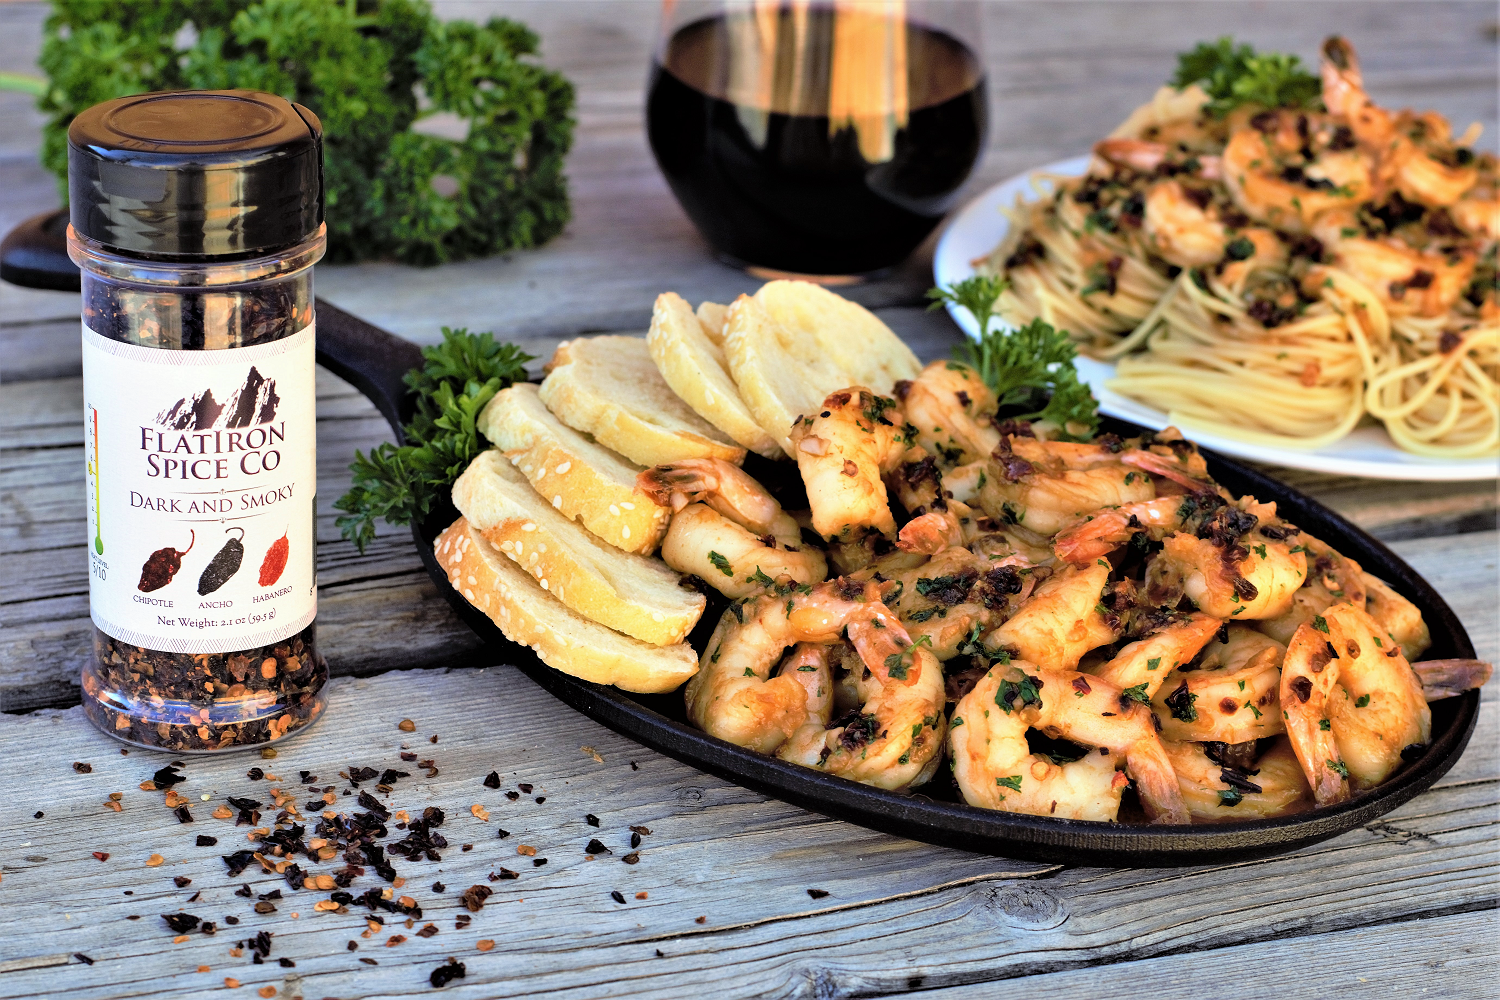 A blend of dried chipotle, ancho, & habanero peppers create an instantly deep smokiness to kick up this spoon-licking heavenly garlic shrimp scampi.